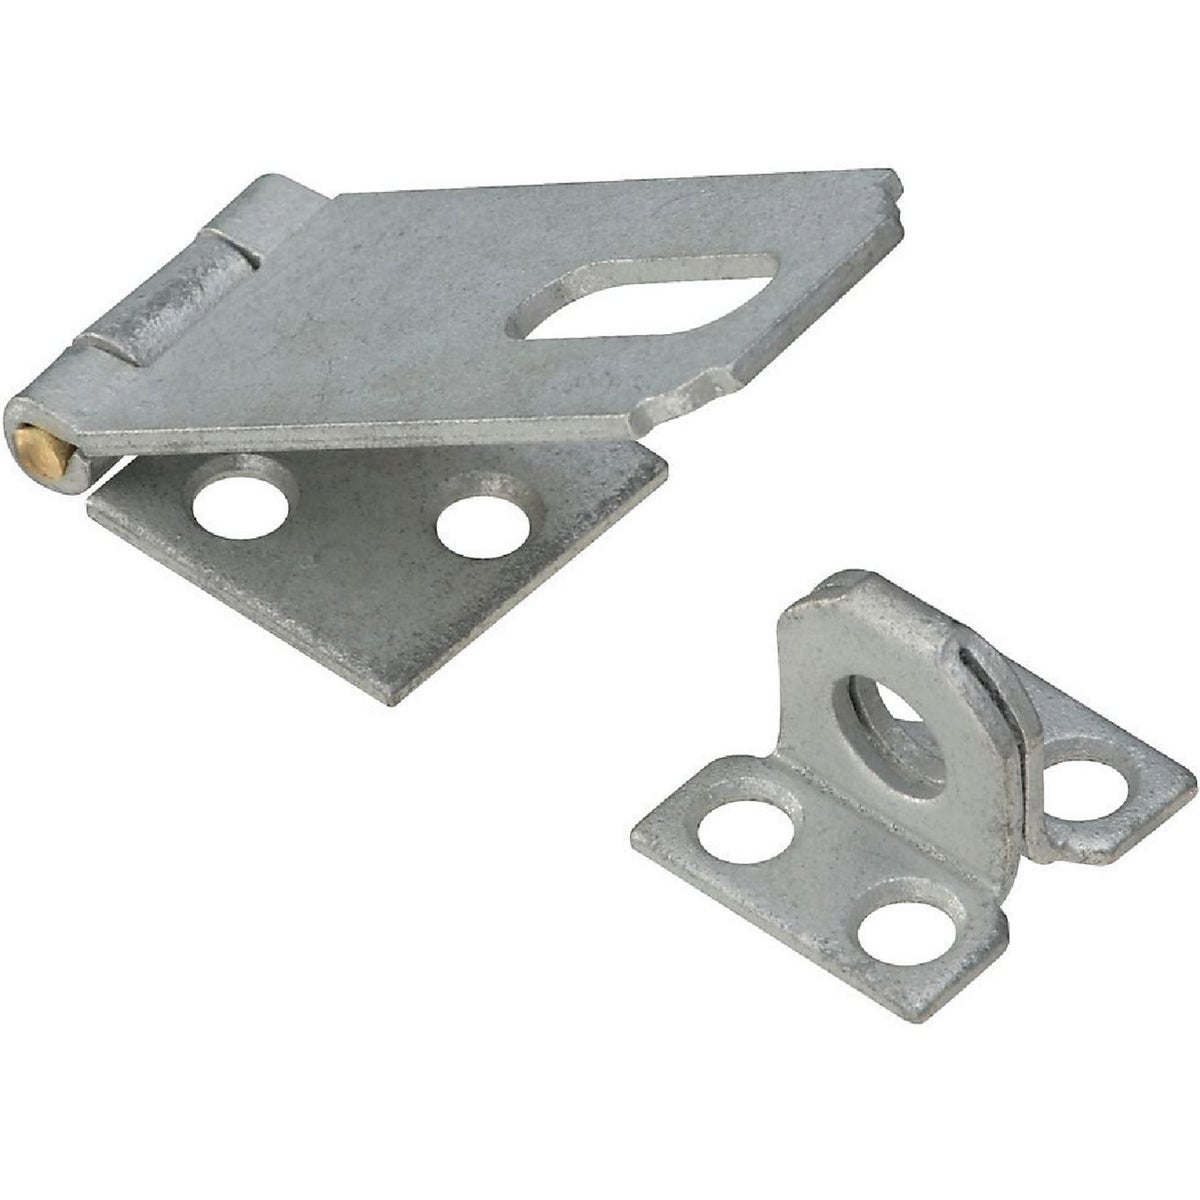 "2-1/2"" GALV SAFETY HASP - N102723 by National Mfg Co"